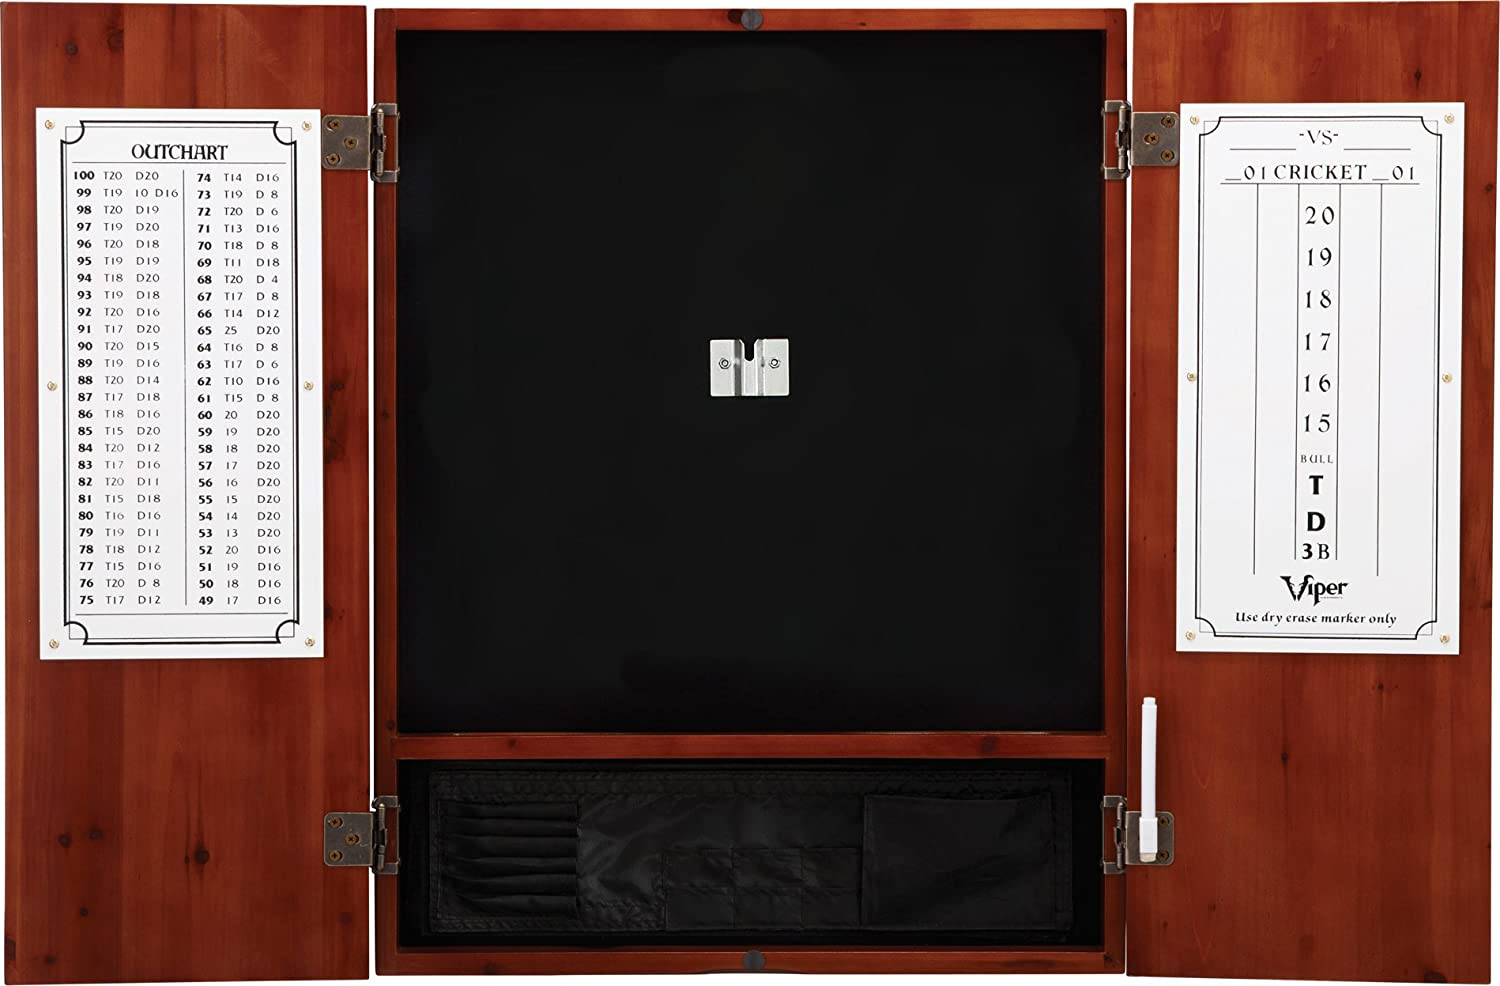 Viper Metropolitan Solid Wood Cabinet & Sisal/Bristle Dartboard Ready-to-Play Bundle with Steel-Tip Darts, Integrated Storage, Dry Erase Scoreboard & Out-Chart in Multiple Stain Options